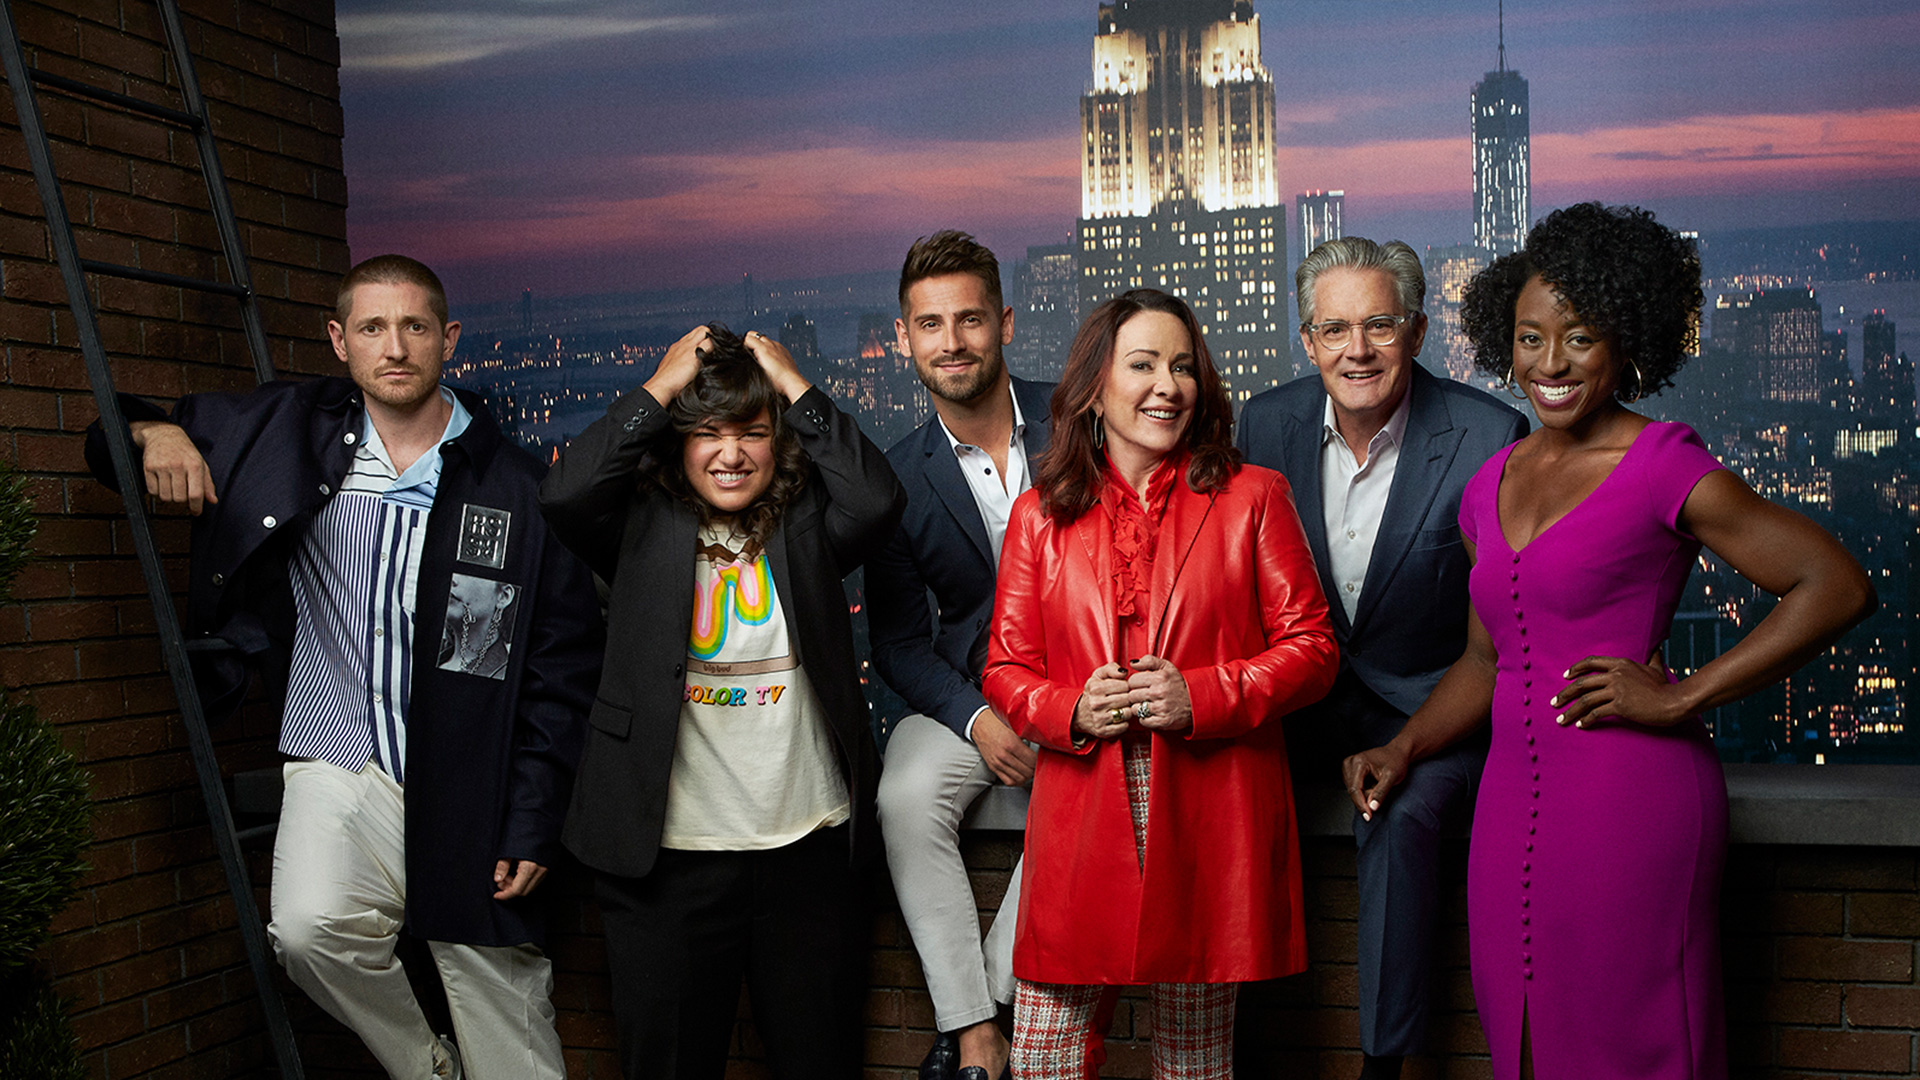 Carol's Second Act: Lucas Neff, Sabrina Jalees, Jean-Luc Bilodeau, Patricia Heaton, Kyle MacLachlan, and Ito Aghayere